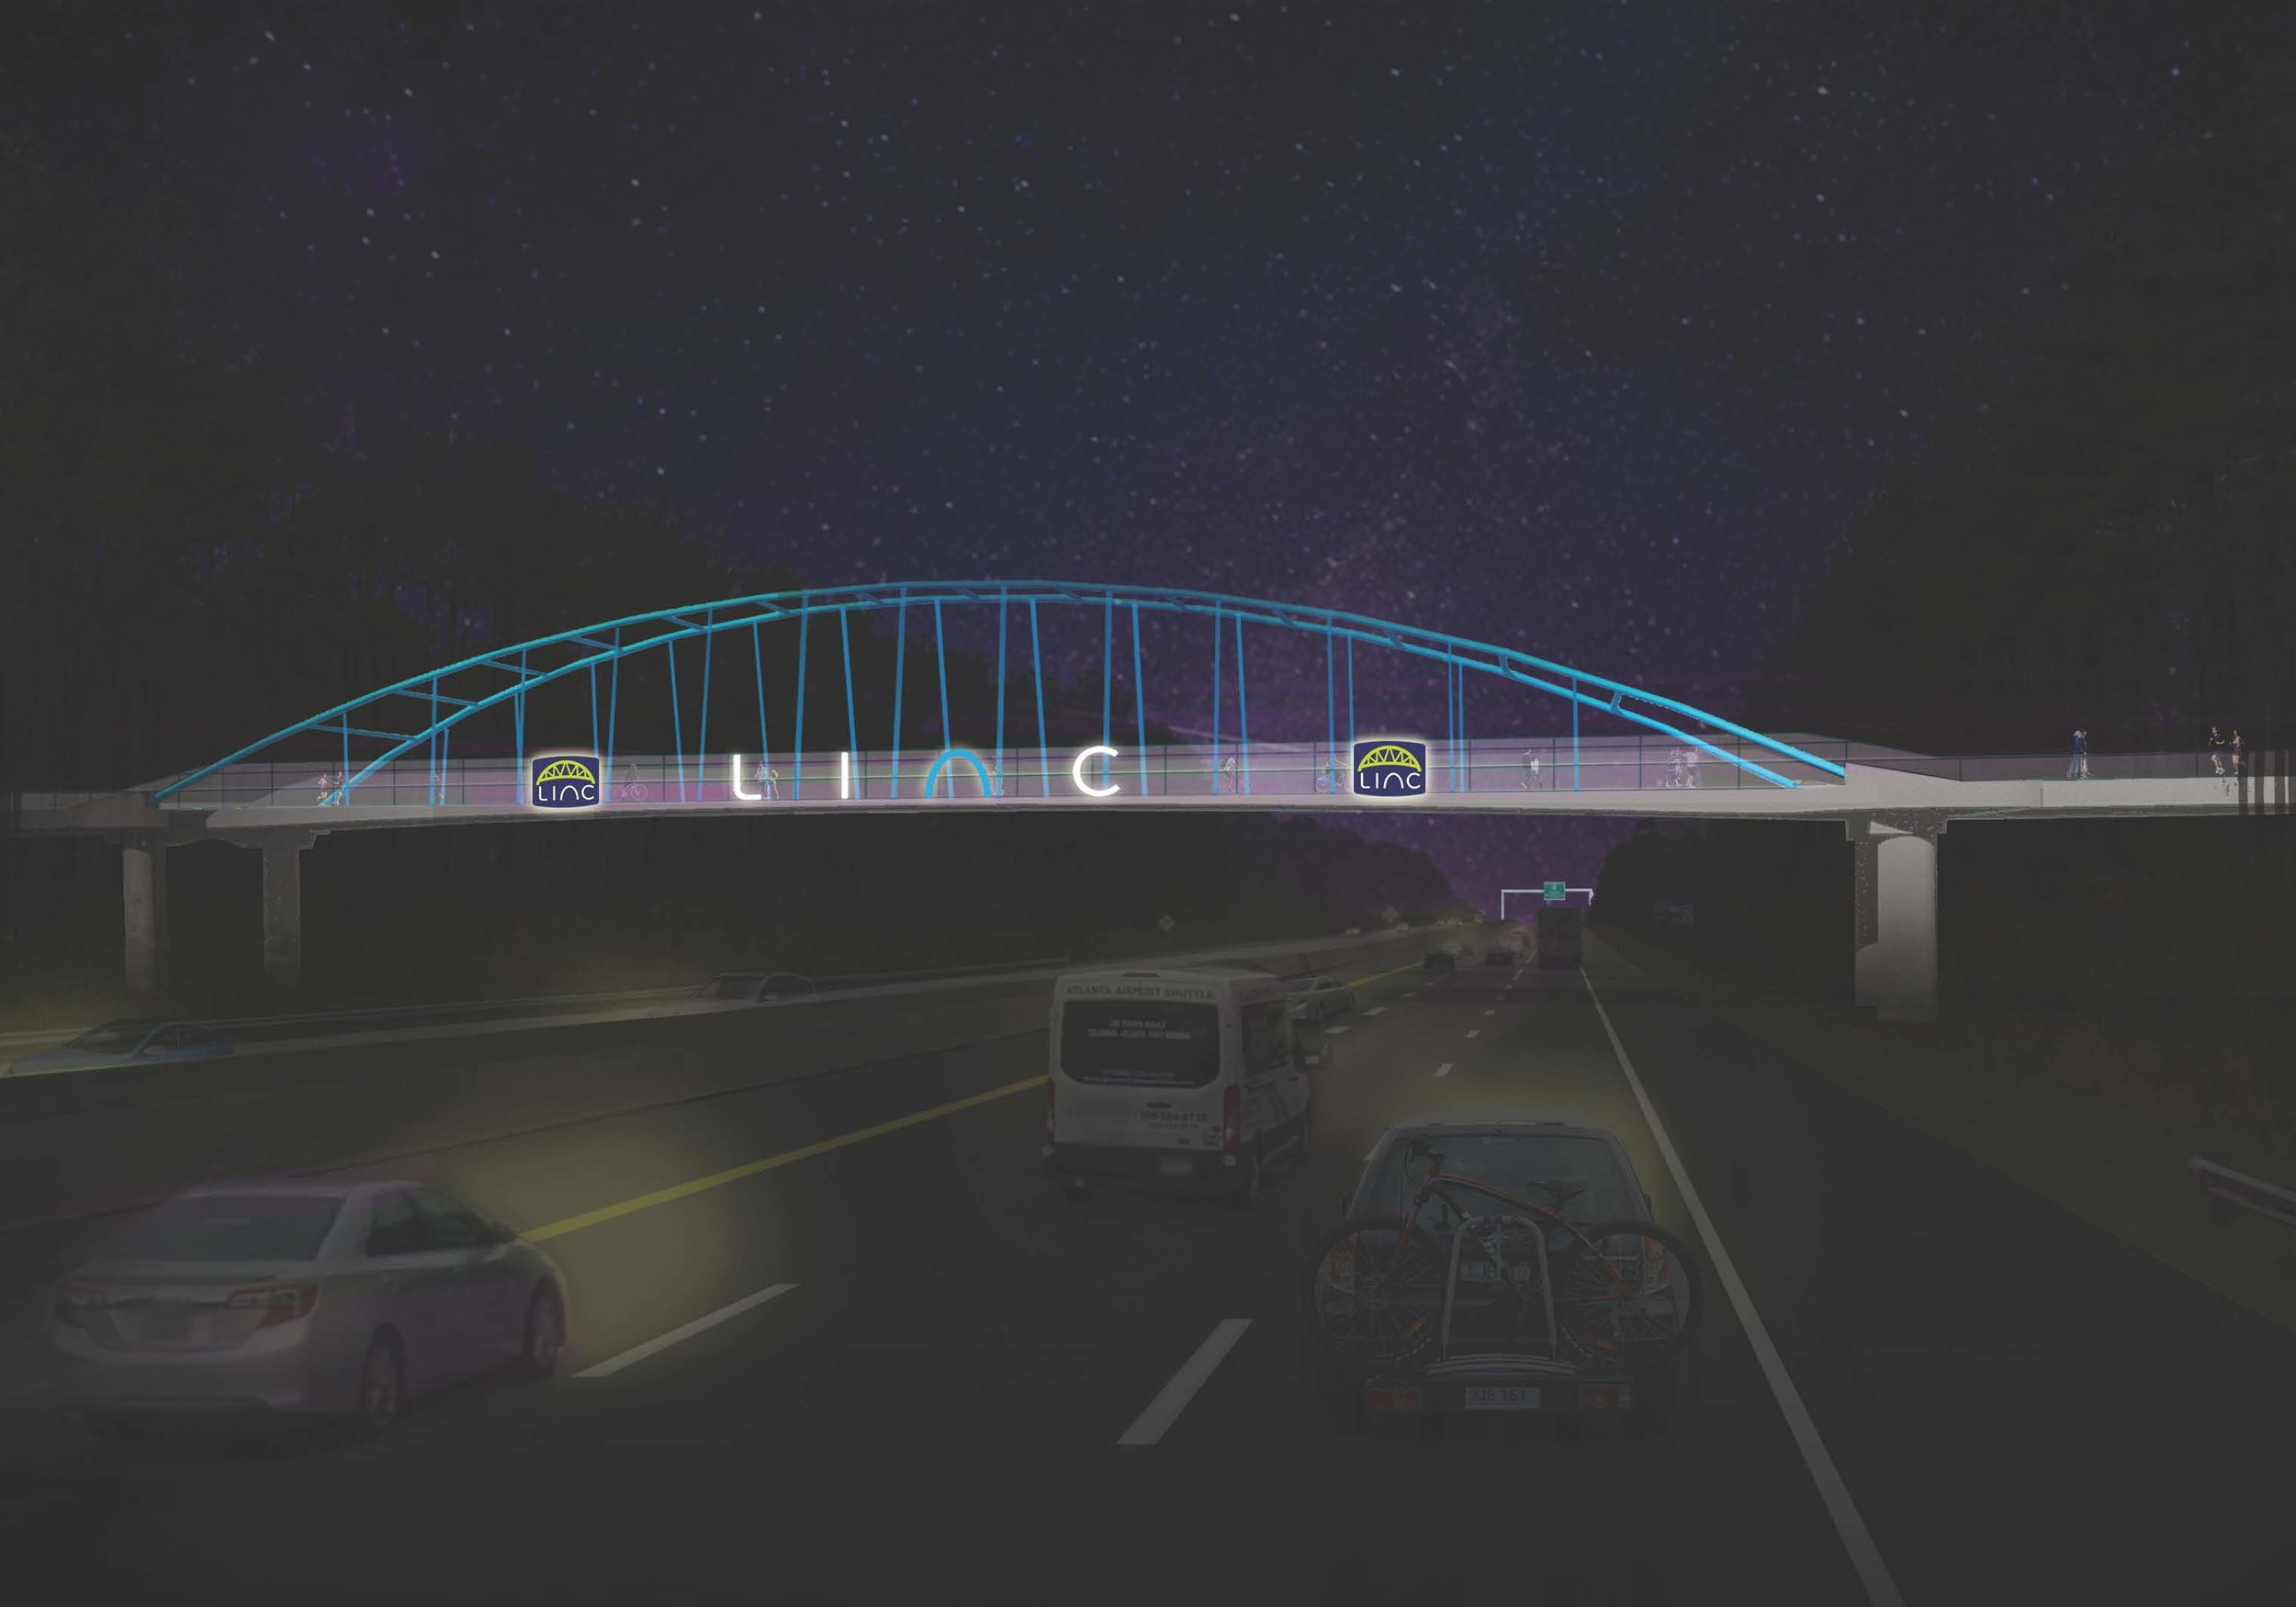 Proposed plan for the LINC pedestrian bridge over I-85 at night